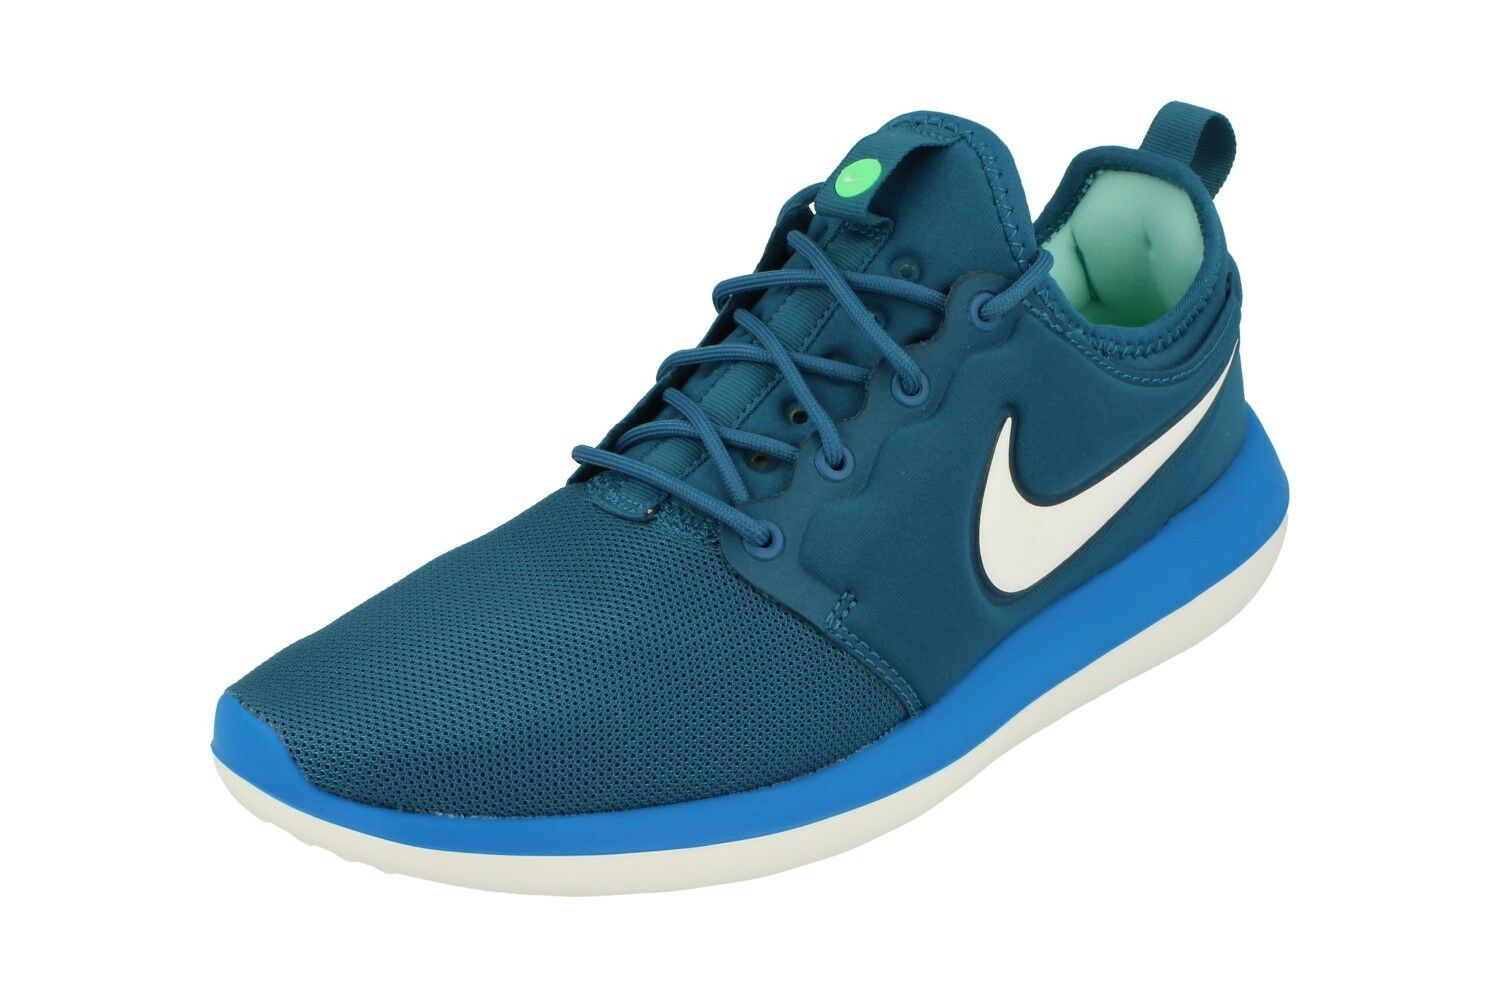 69a6f6eeb8d Nike Roshe Roshe Nike Two Mens Running Trainers 844656 Sneakers Shoes 402  c83344